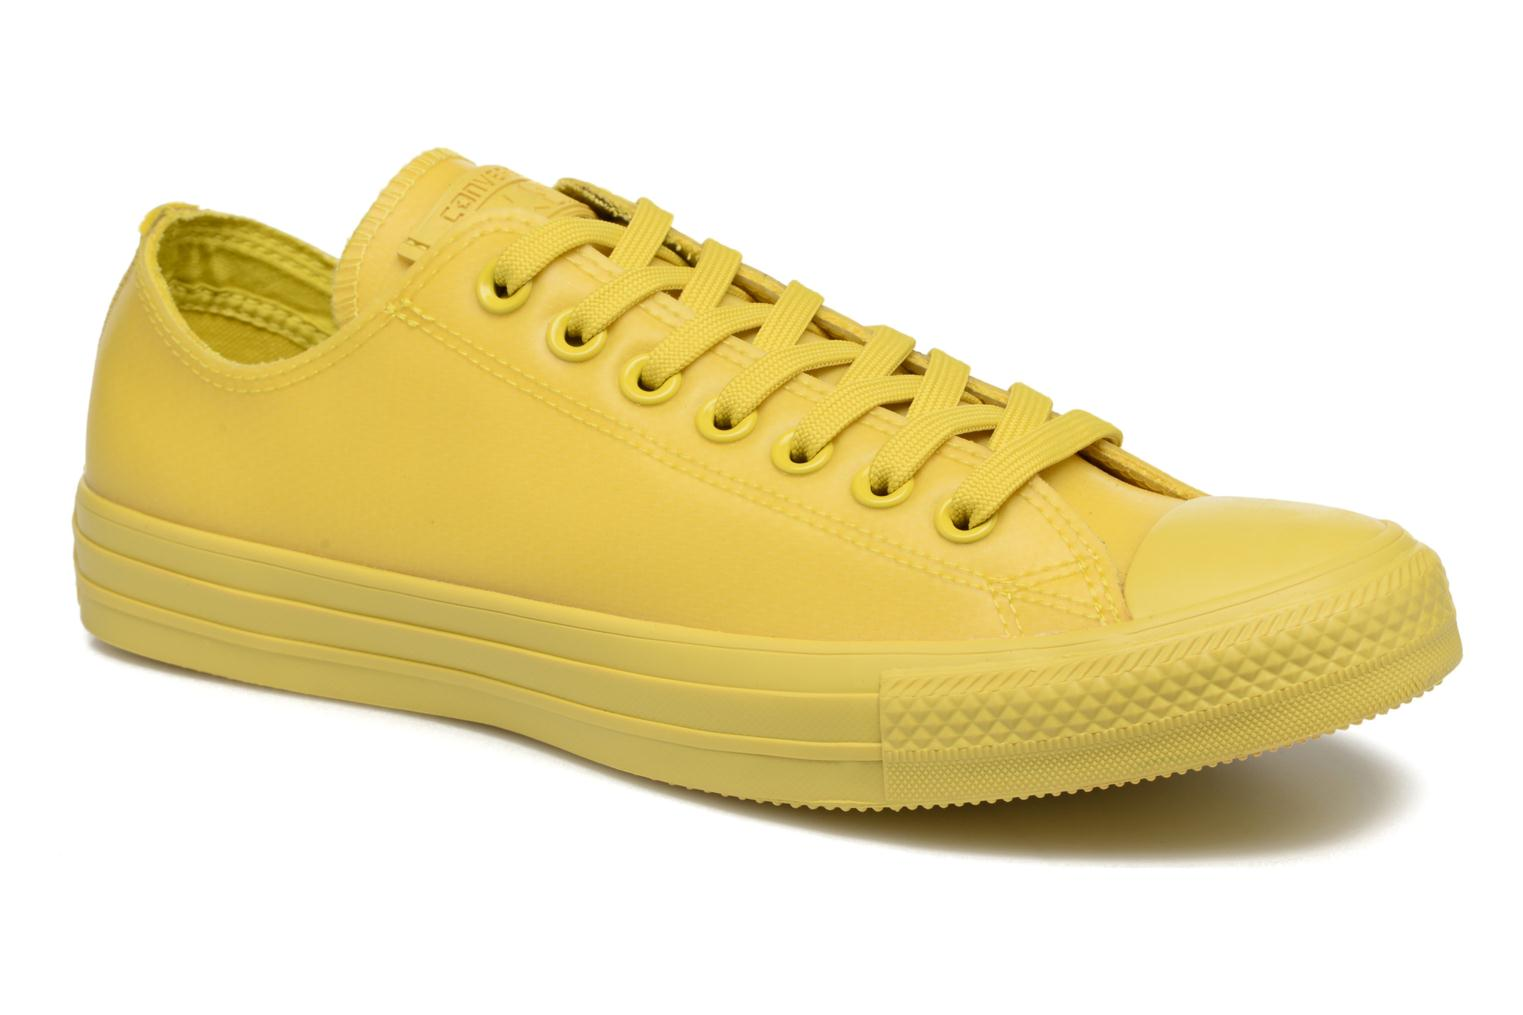 Chuck Taylor All Star Rubber Ox Bitter Lemon/Bitter Lemon/Lemon